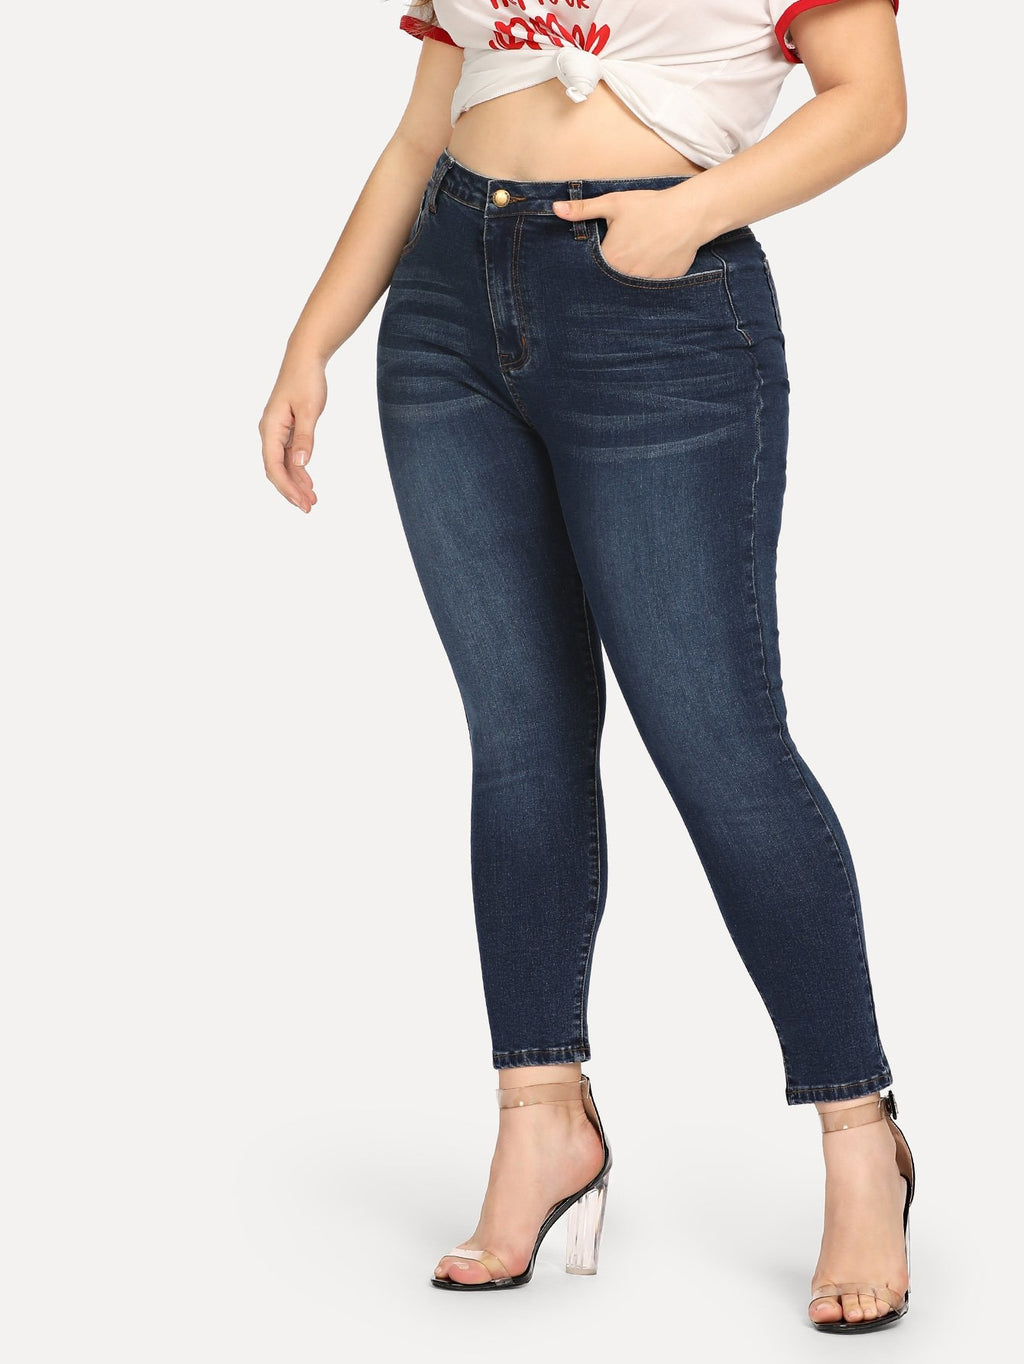 Plus Size Jeans - Dark Wash Skinny Crop Jeans